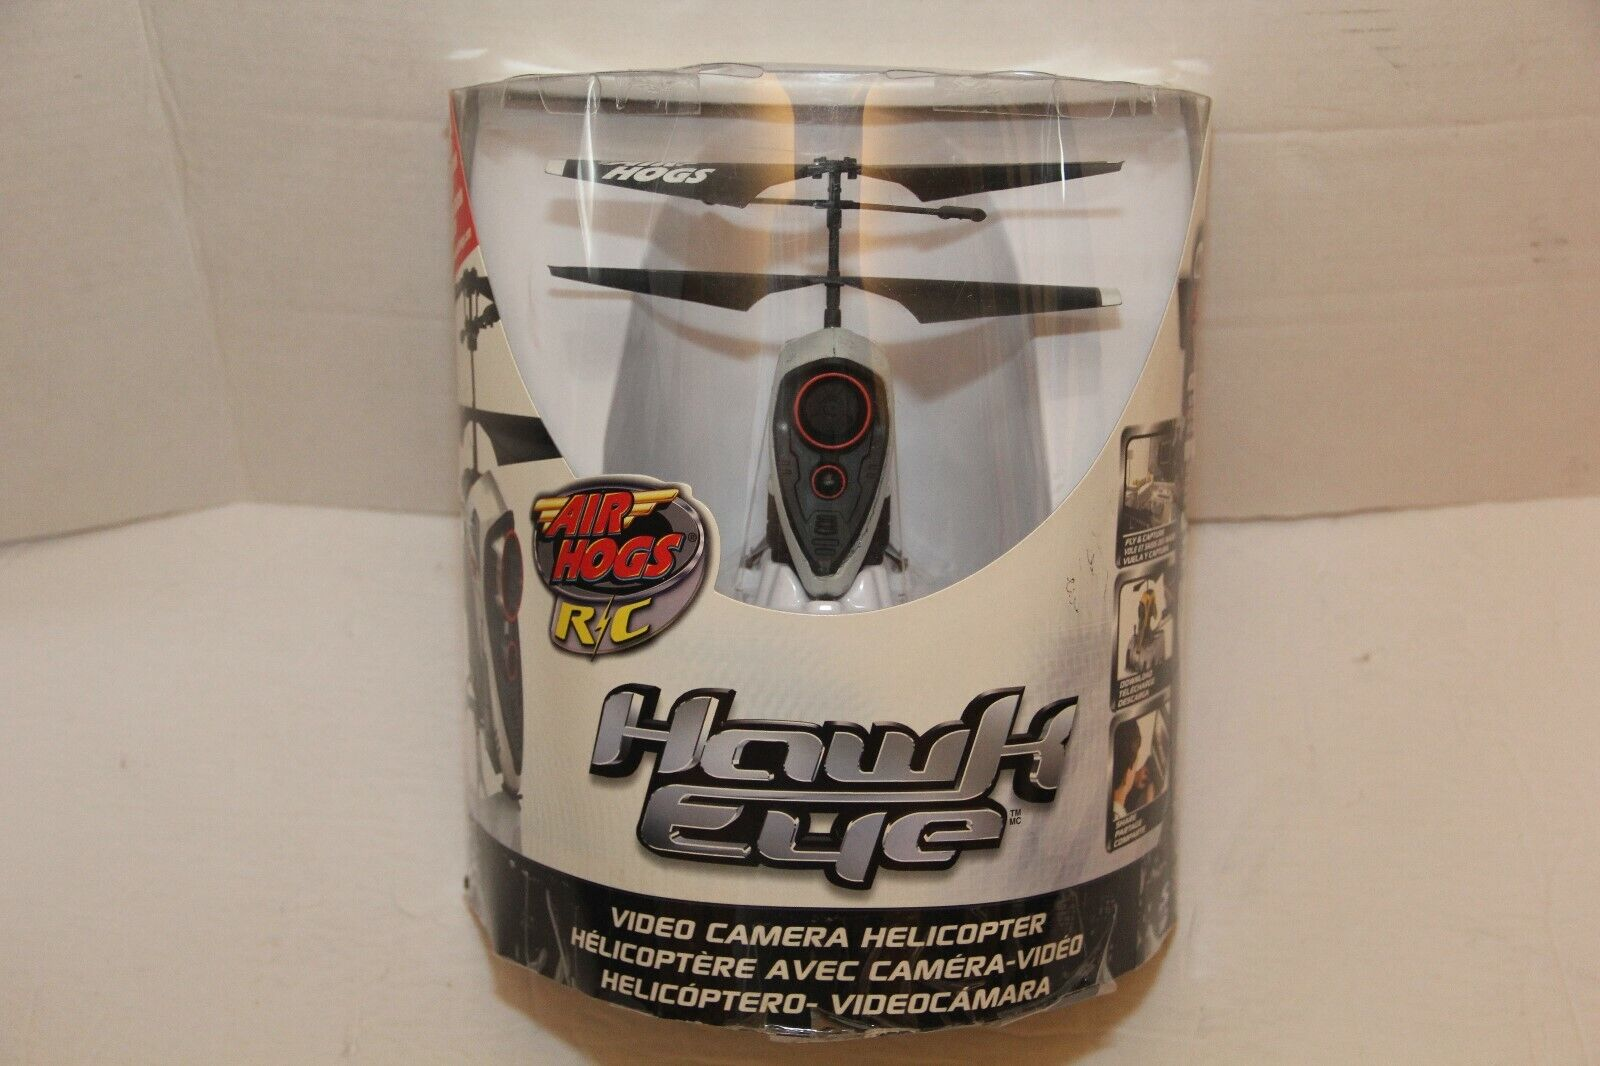 Air Hogs Hawk Eye Video Camera Helicopter New